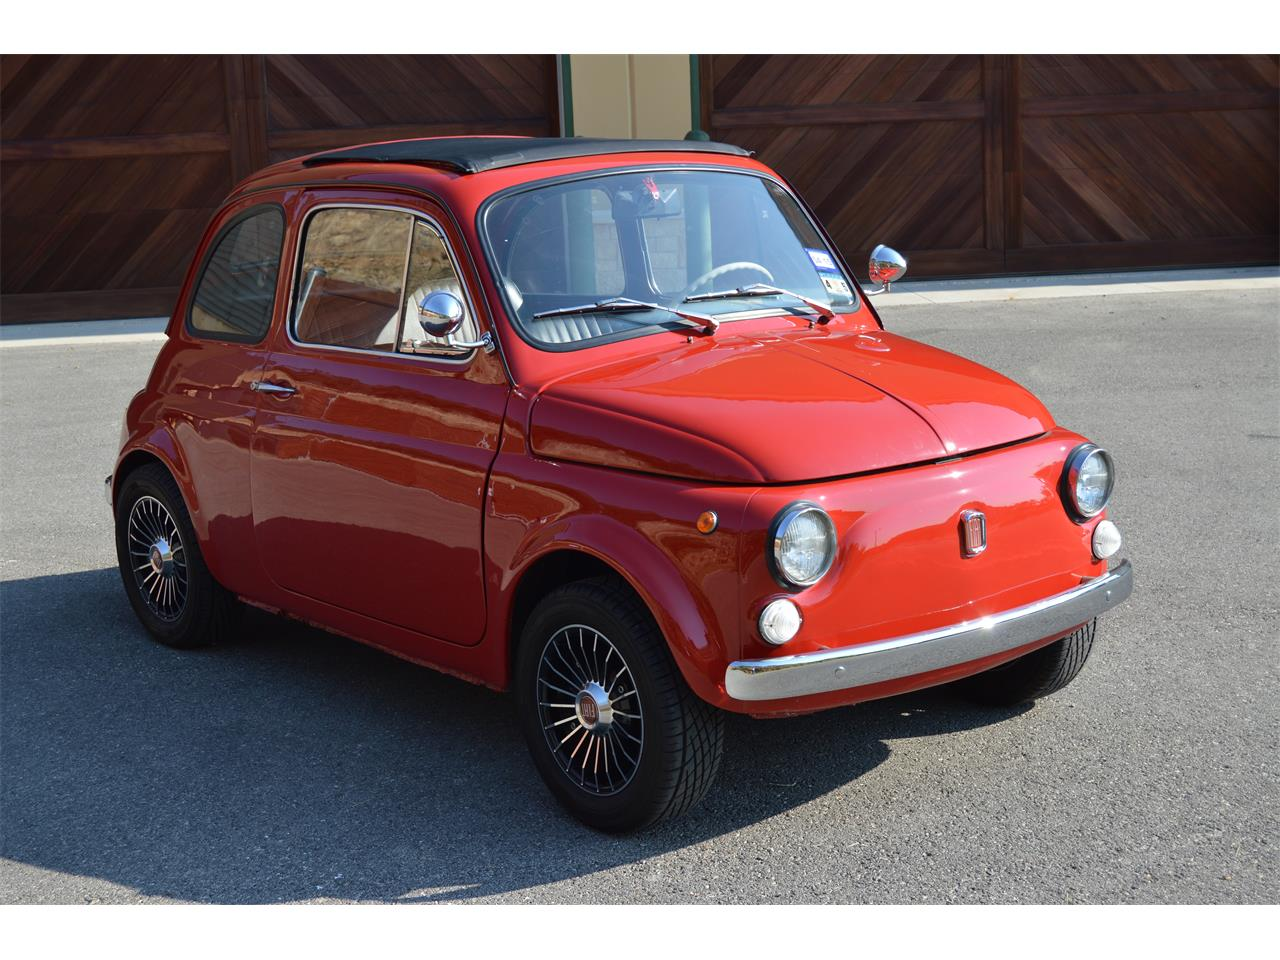 Large Picture of '70 Cinquecento located in San Antonio Texas - $24,000.00 Offered by LT Car Holding - GJO4